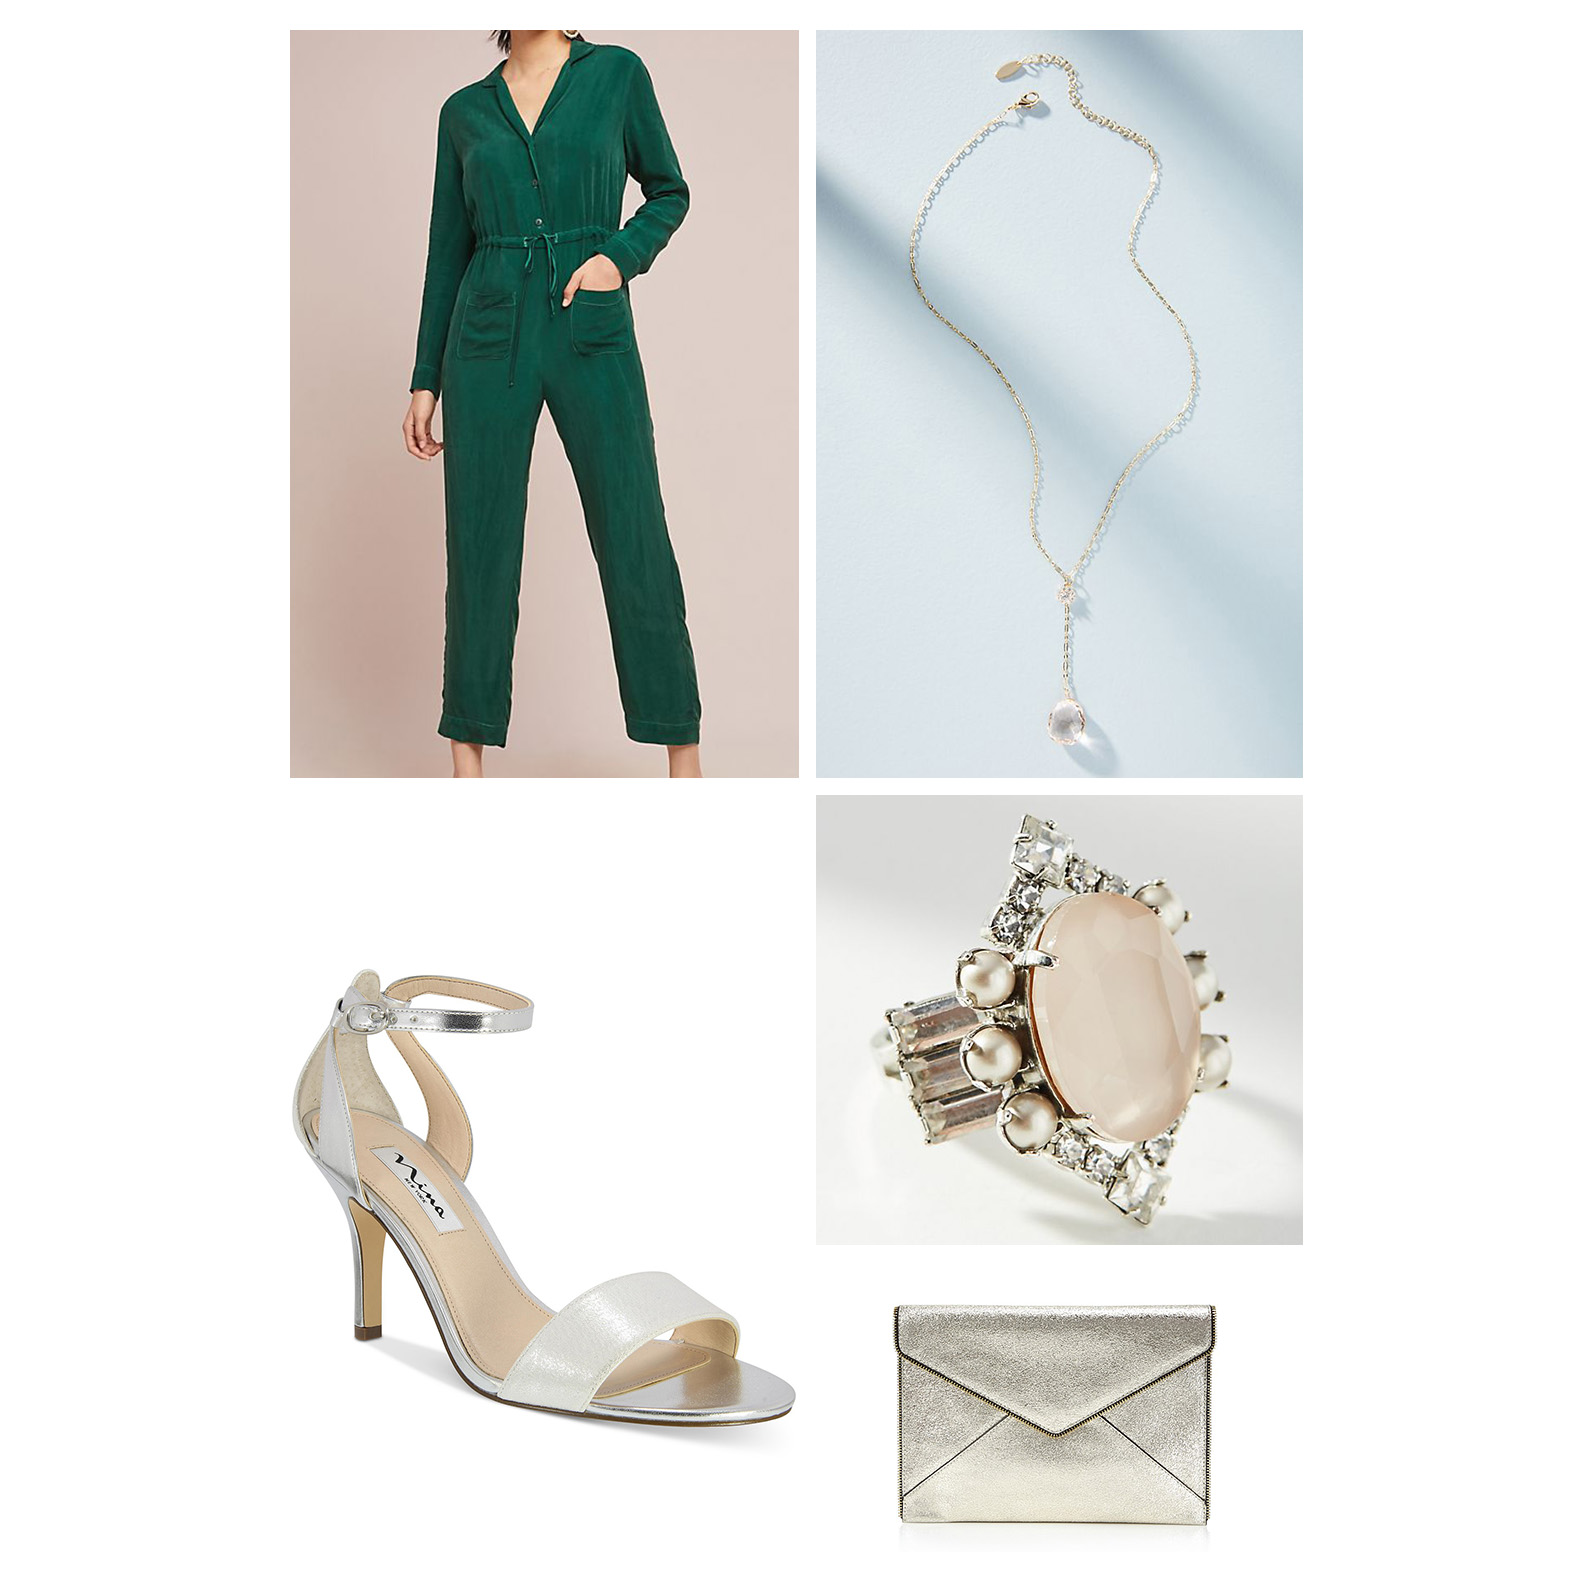 Fall dinner outfit idea - green jumpsuit, silver heel sandals, pendant necklace, cocktail ring, and silver clutch!